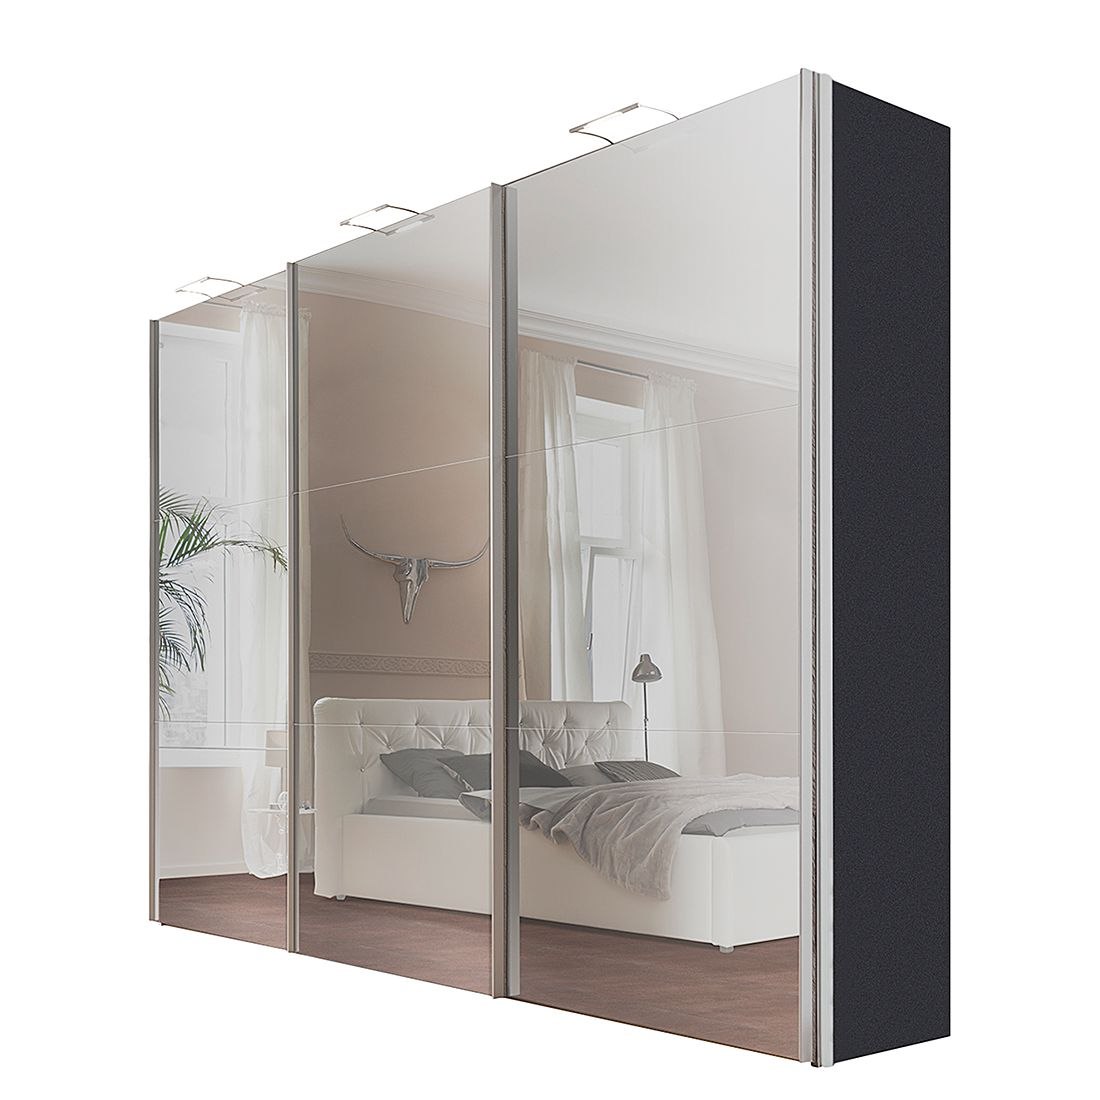 schwebet renschrank ruby graphit grauspiegel breite x. Black Bedroom Furniture Sets. Home Design Ideas